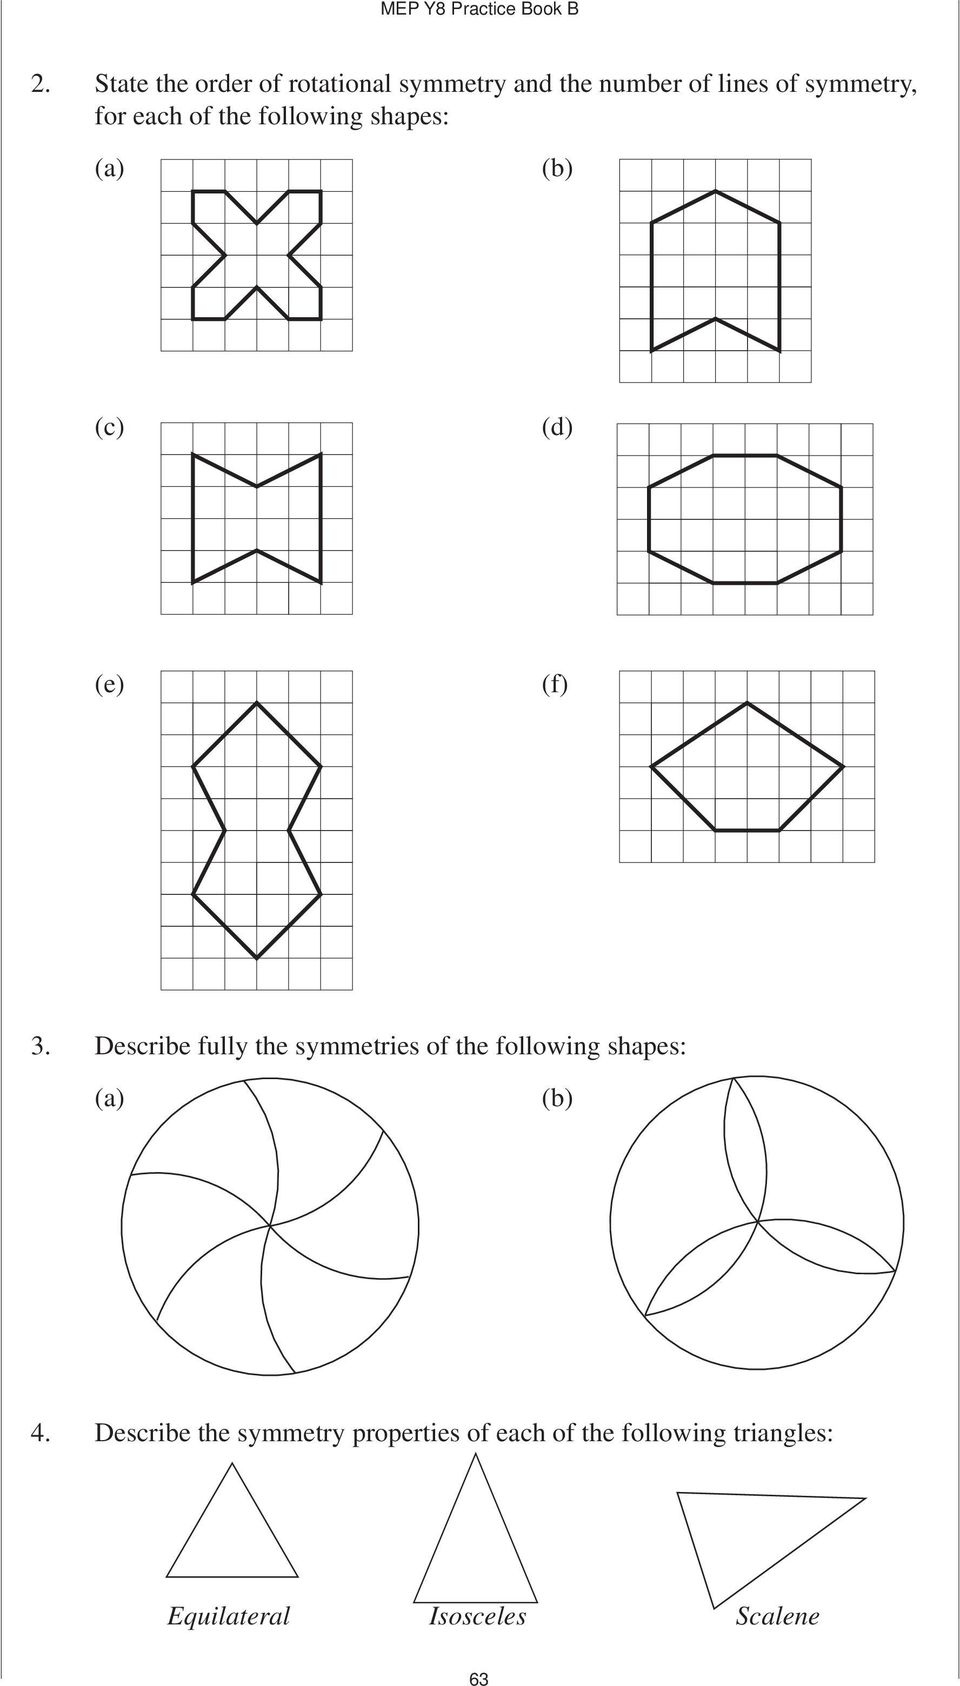 Descrie fully the symmetries of the following shapes: 4.